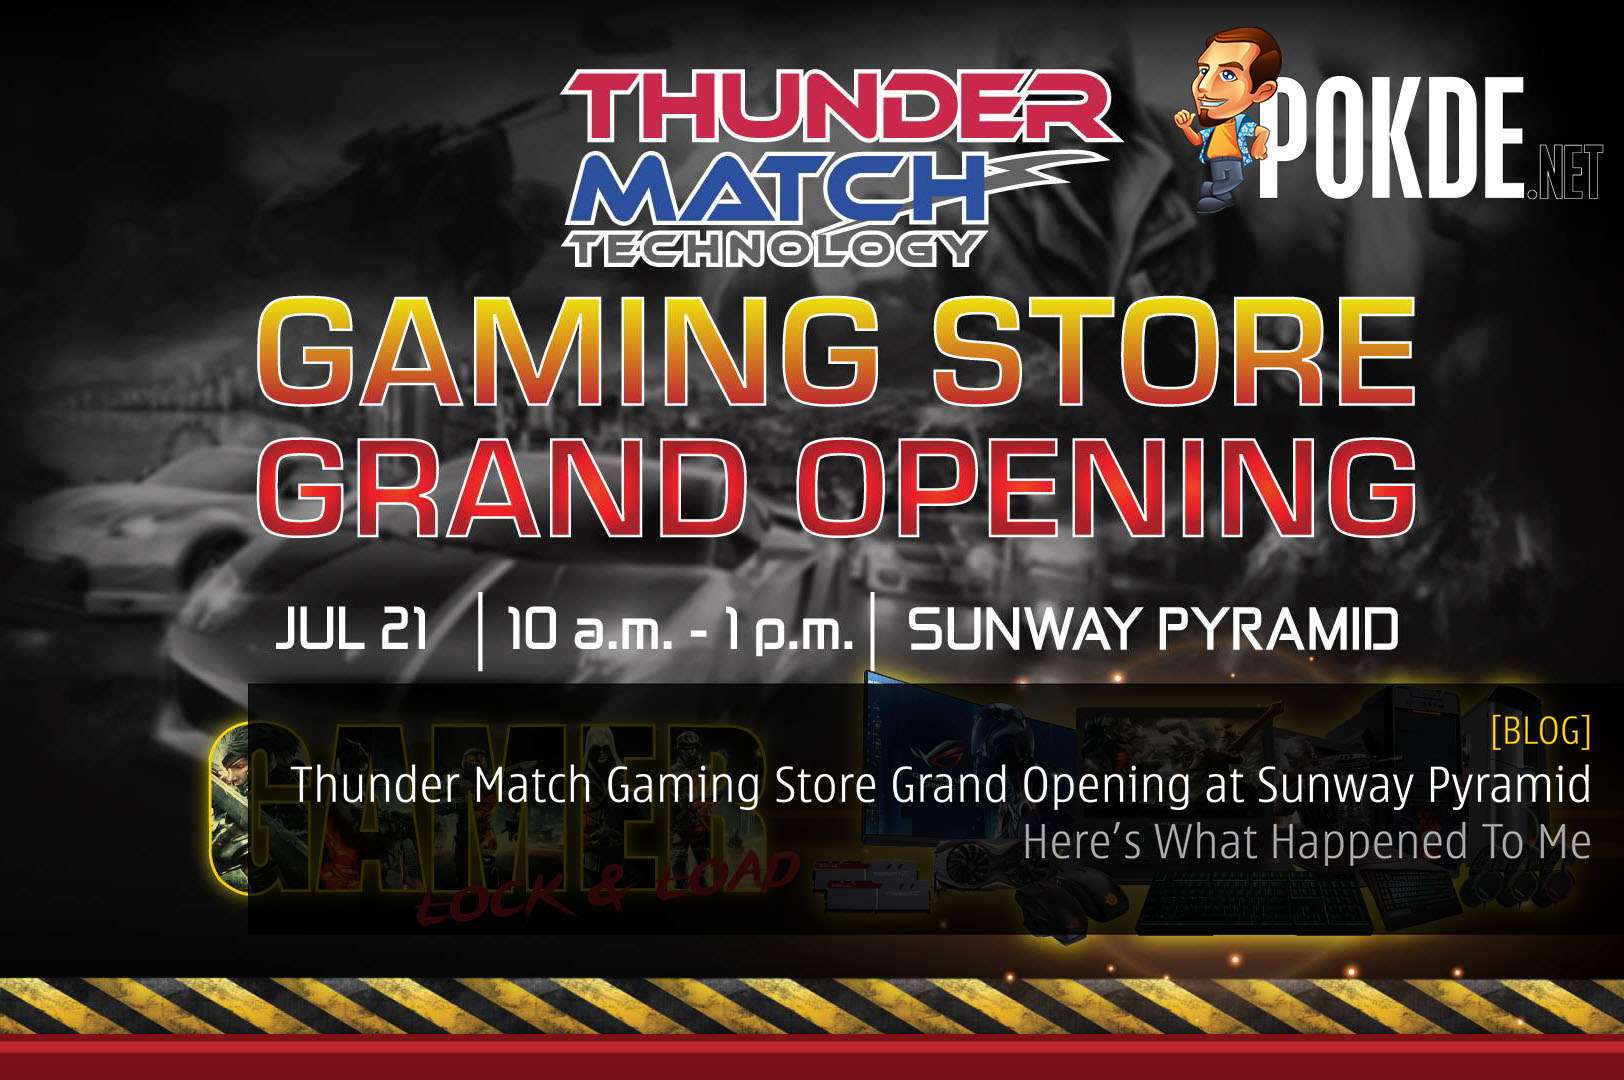 What Happened To Me During The Thunder Match Gaming Store Grand Opening at Sunway Pyramid 52